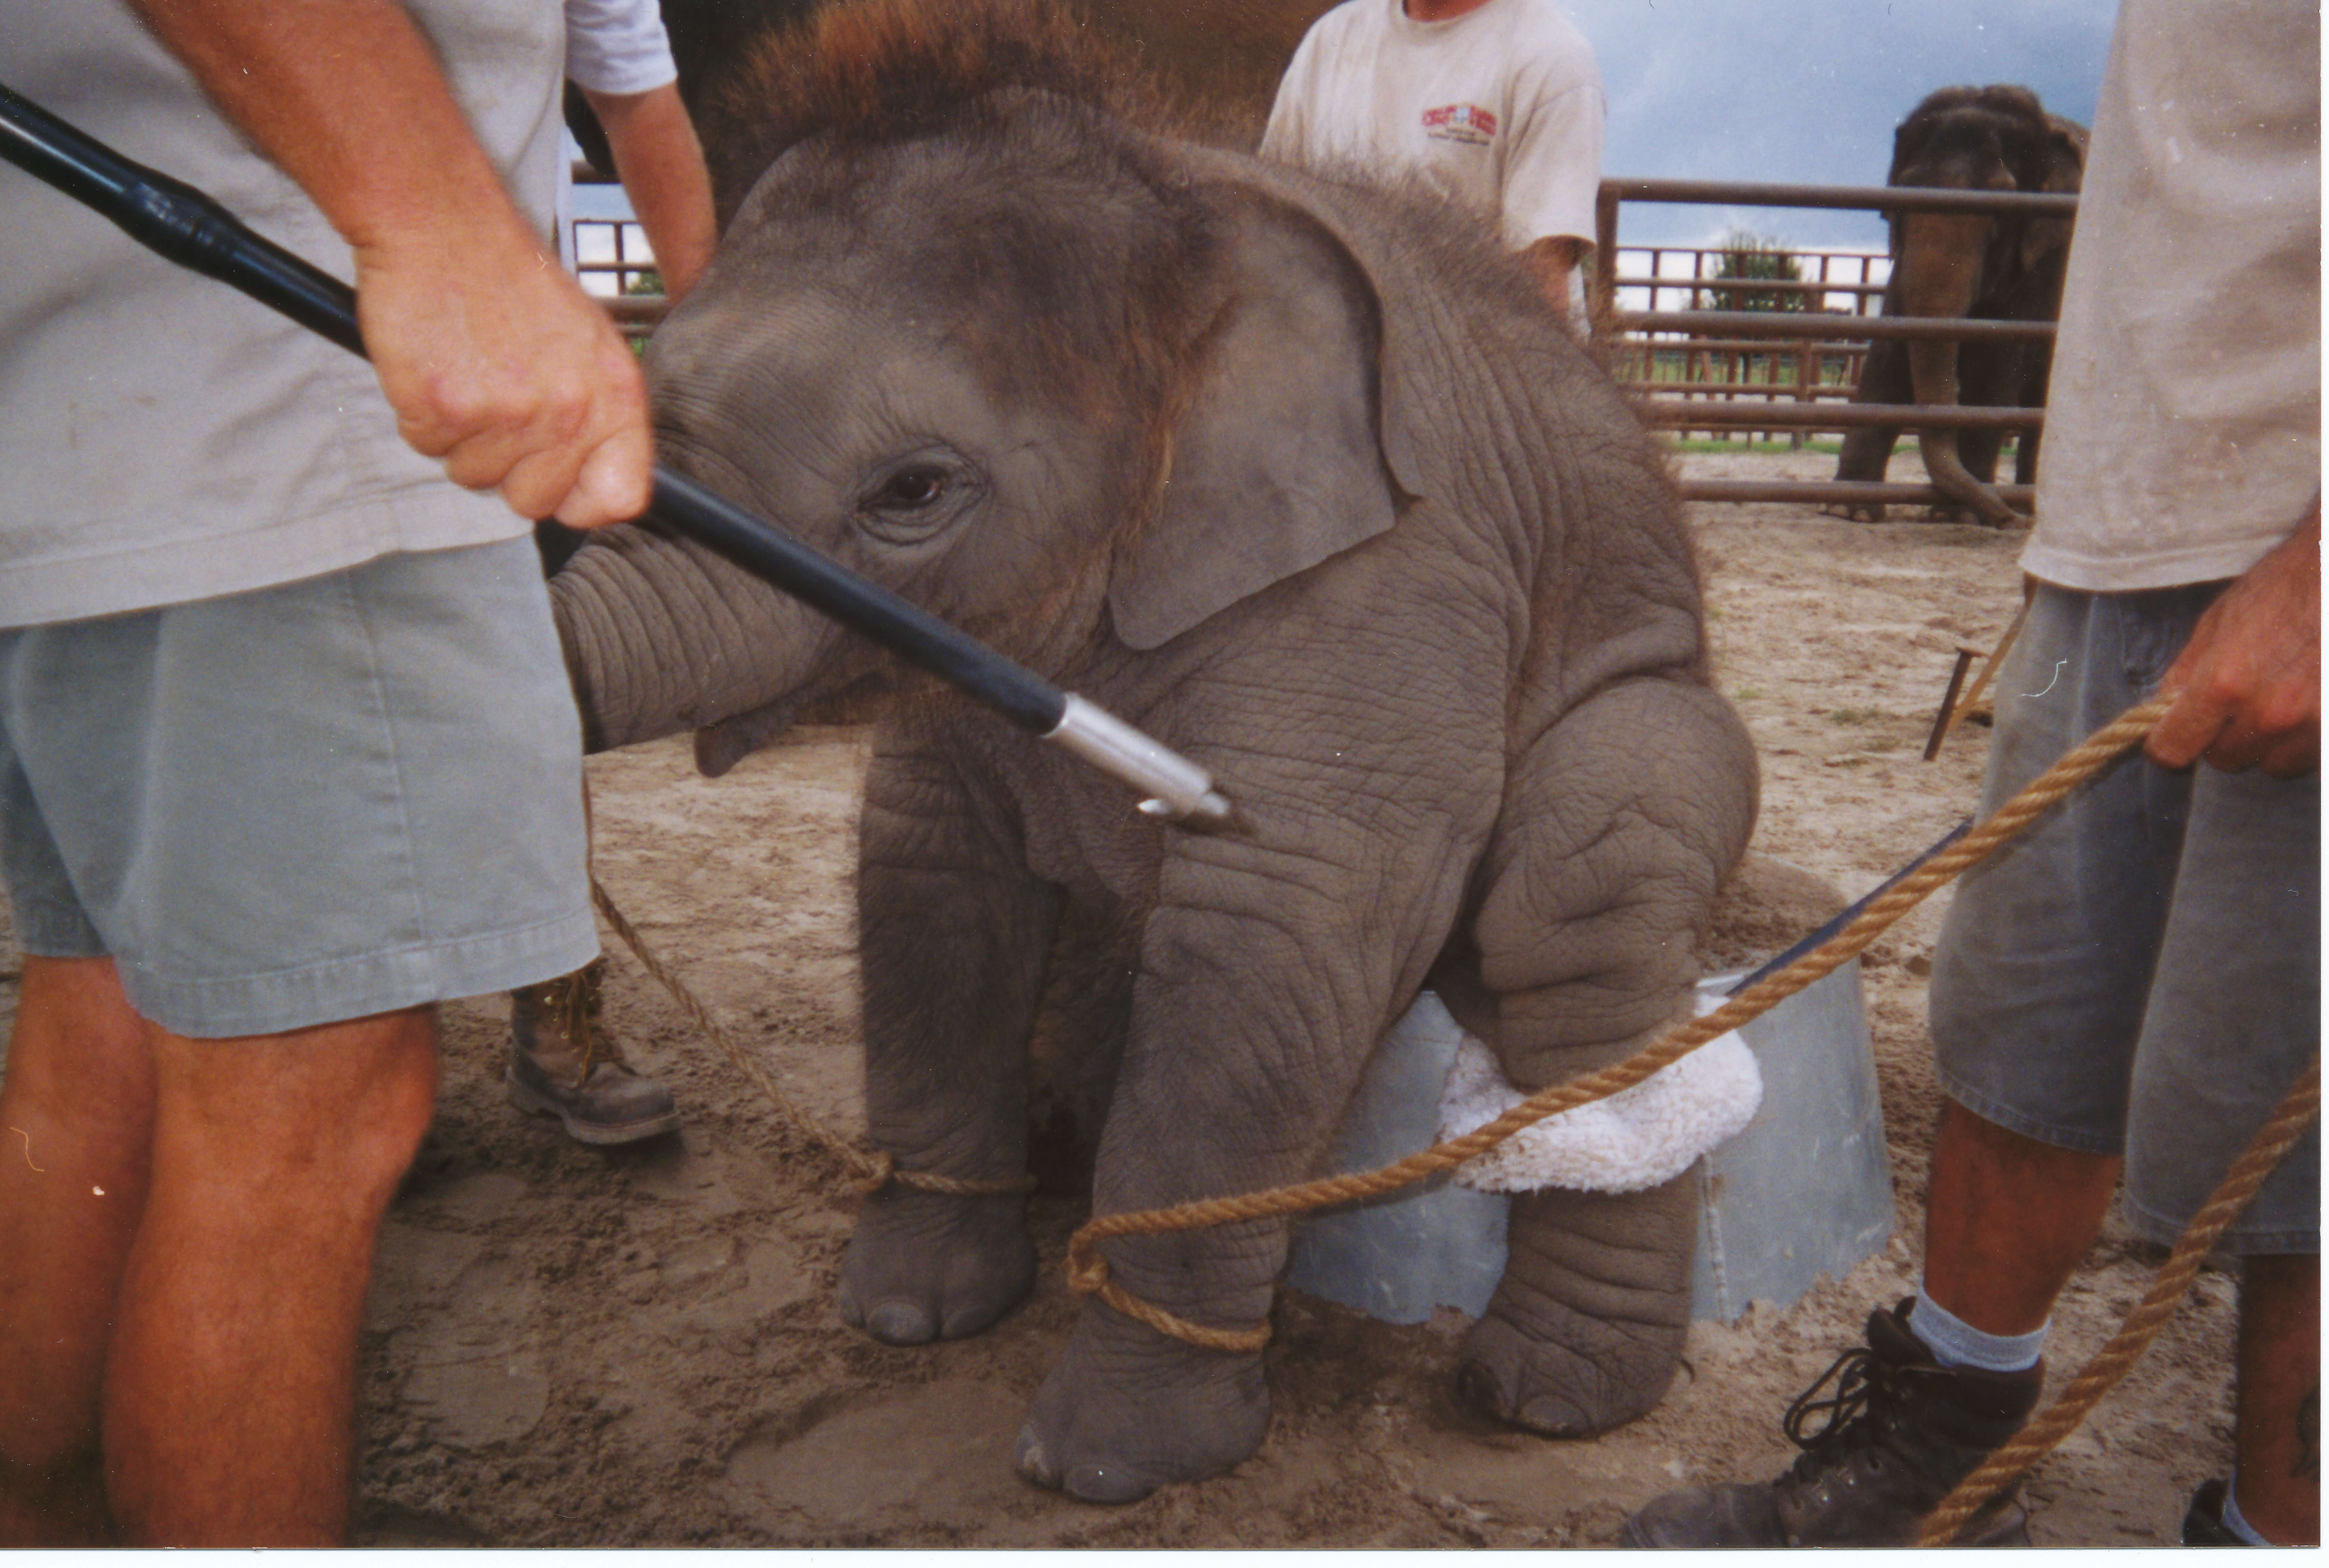 baby elephants being trained to sit up on a tub